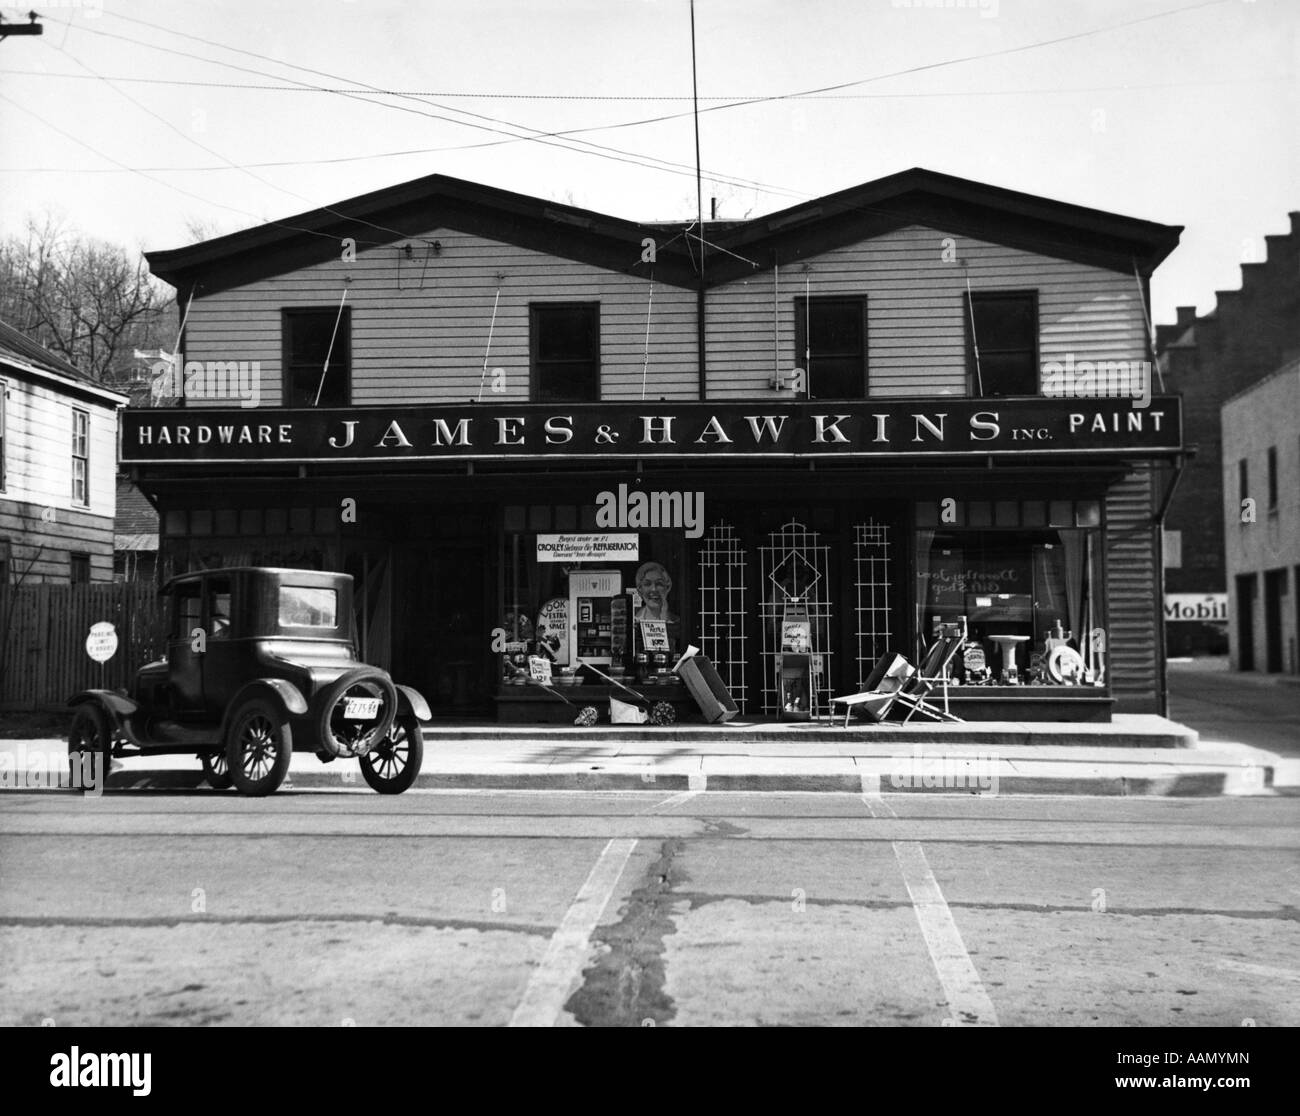 1920s FACADE OF HARDWARE STORE SINGLE CAR PARKED ON STREET IN FRONT - Stock Image